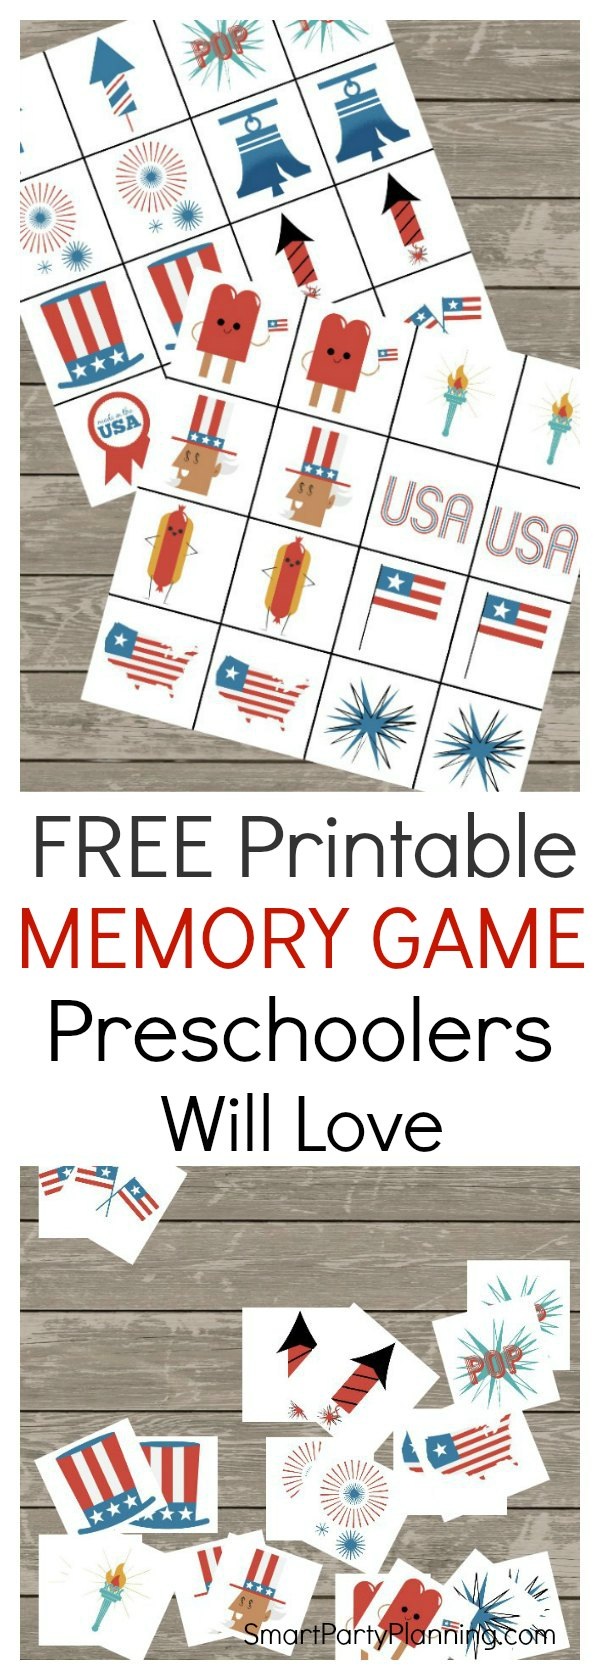 printable memory game that preschoolers will love. Black Bedroom Furniture Sets. Home Design Ideas